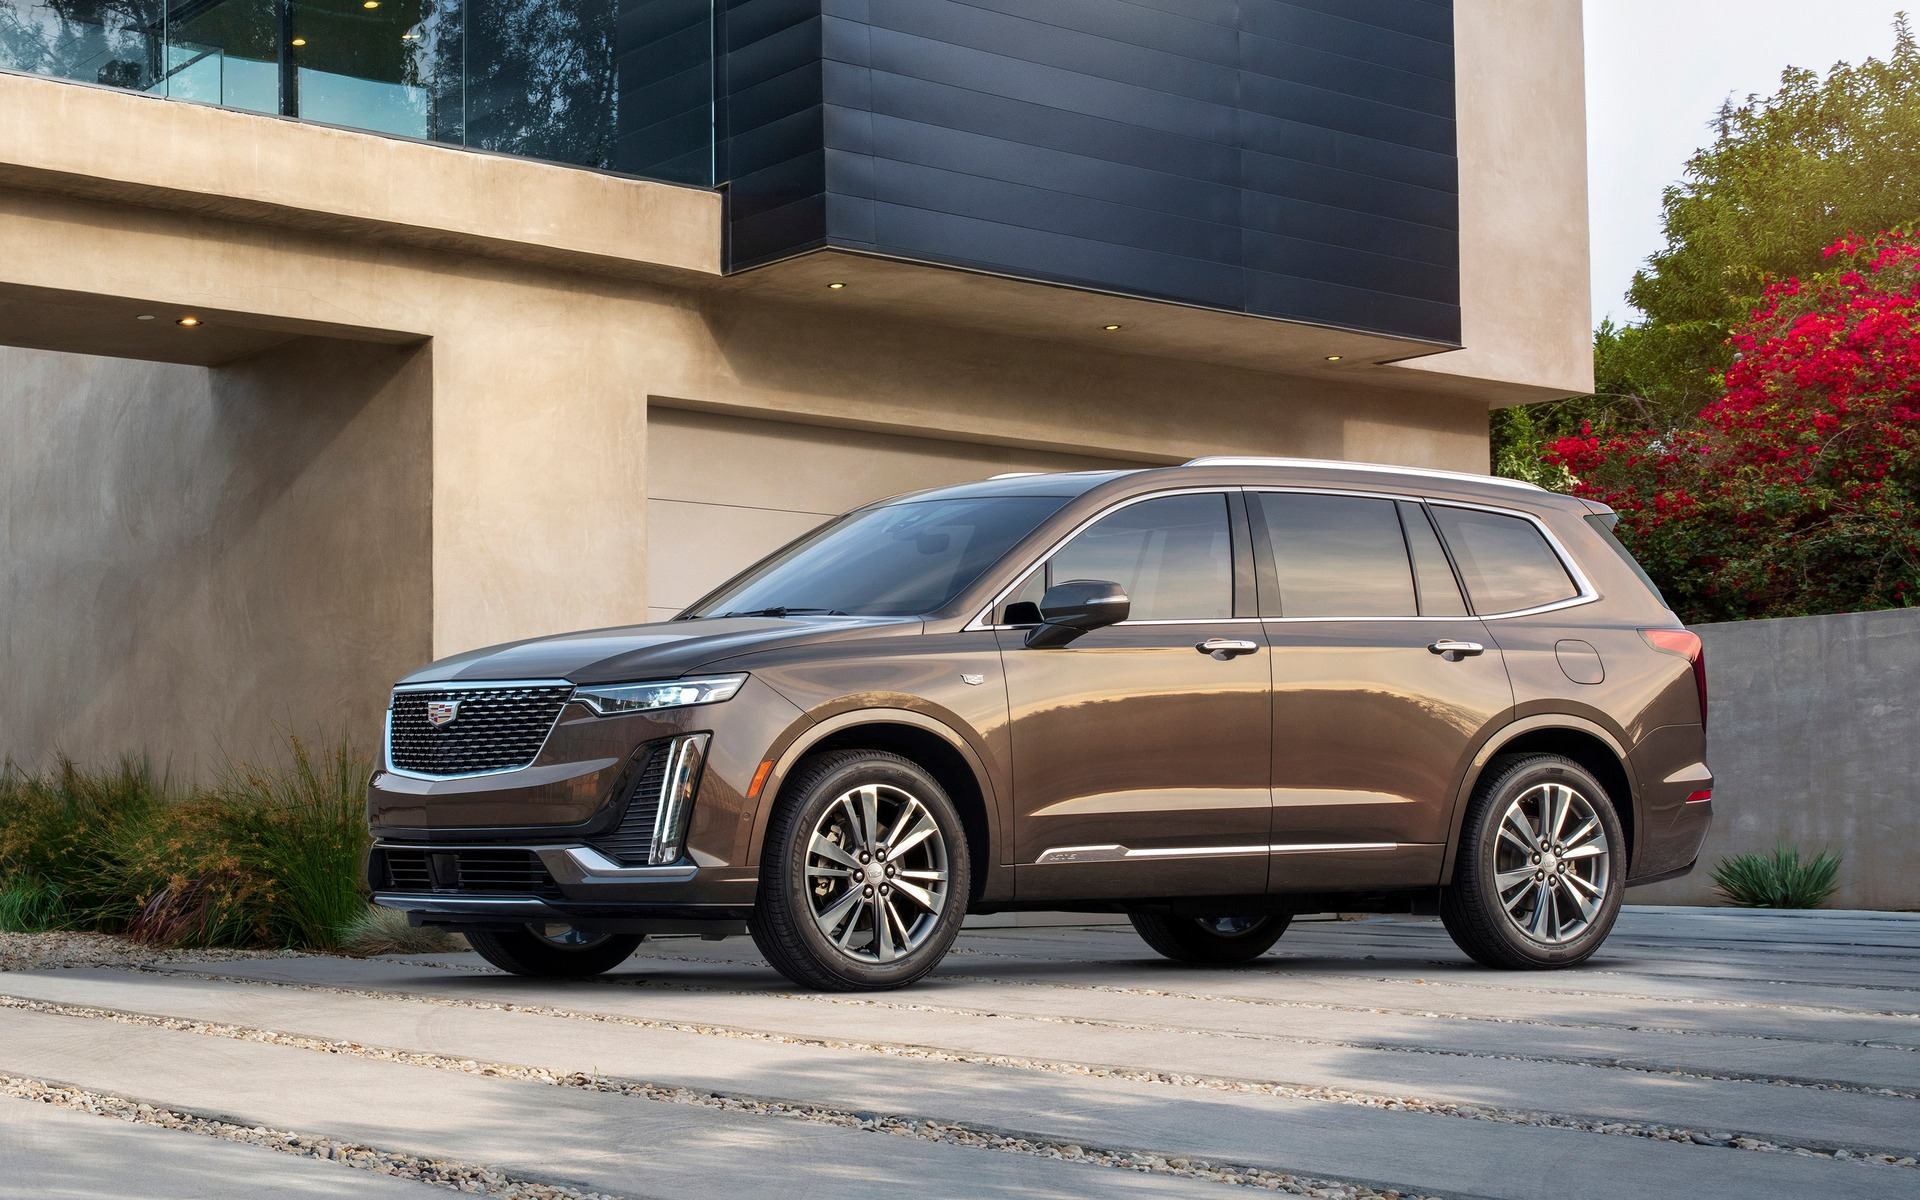 2020 Cadillac Xt6 Pricing Announced The Car Guide